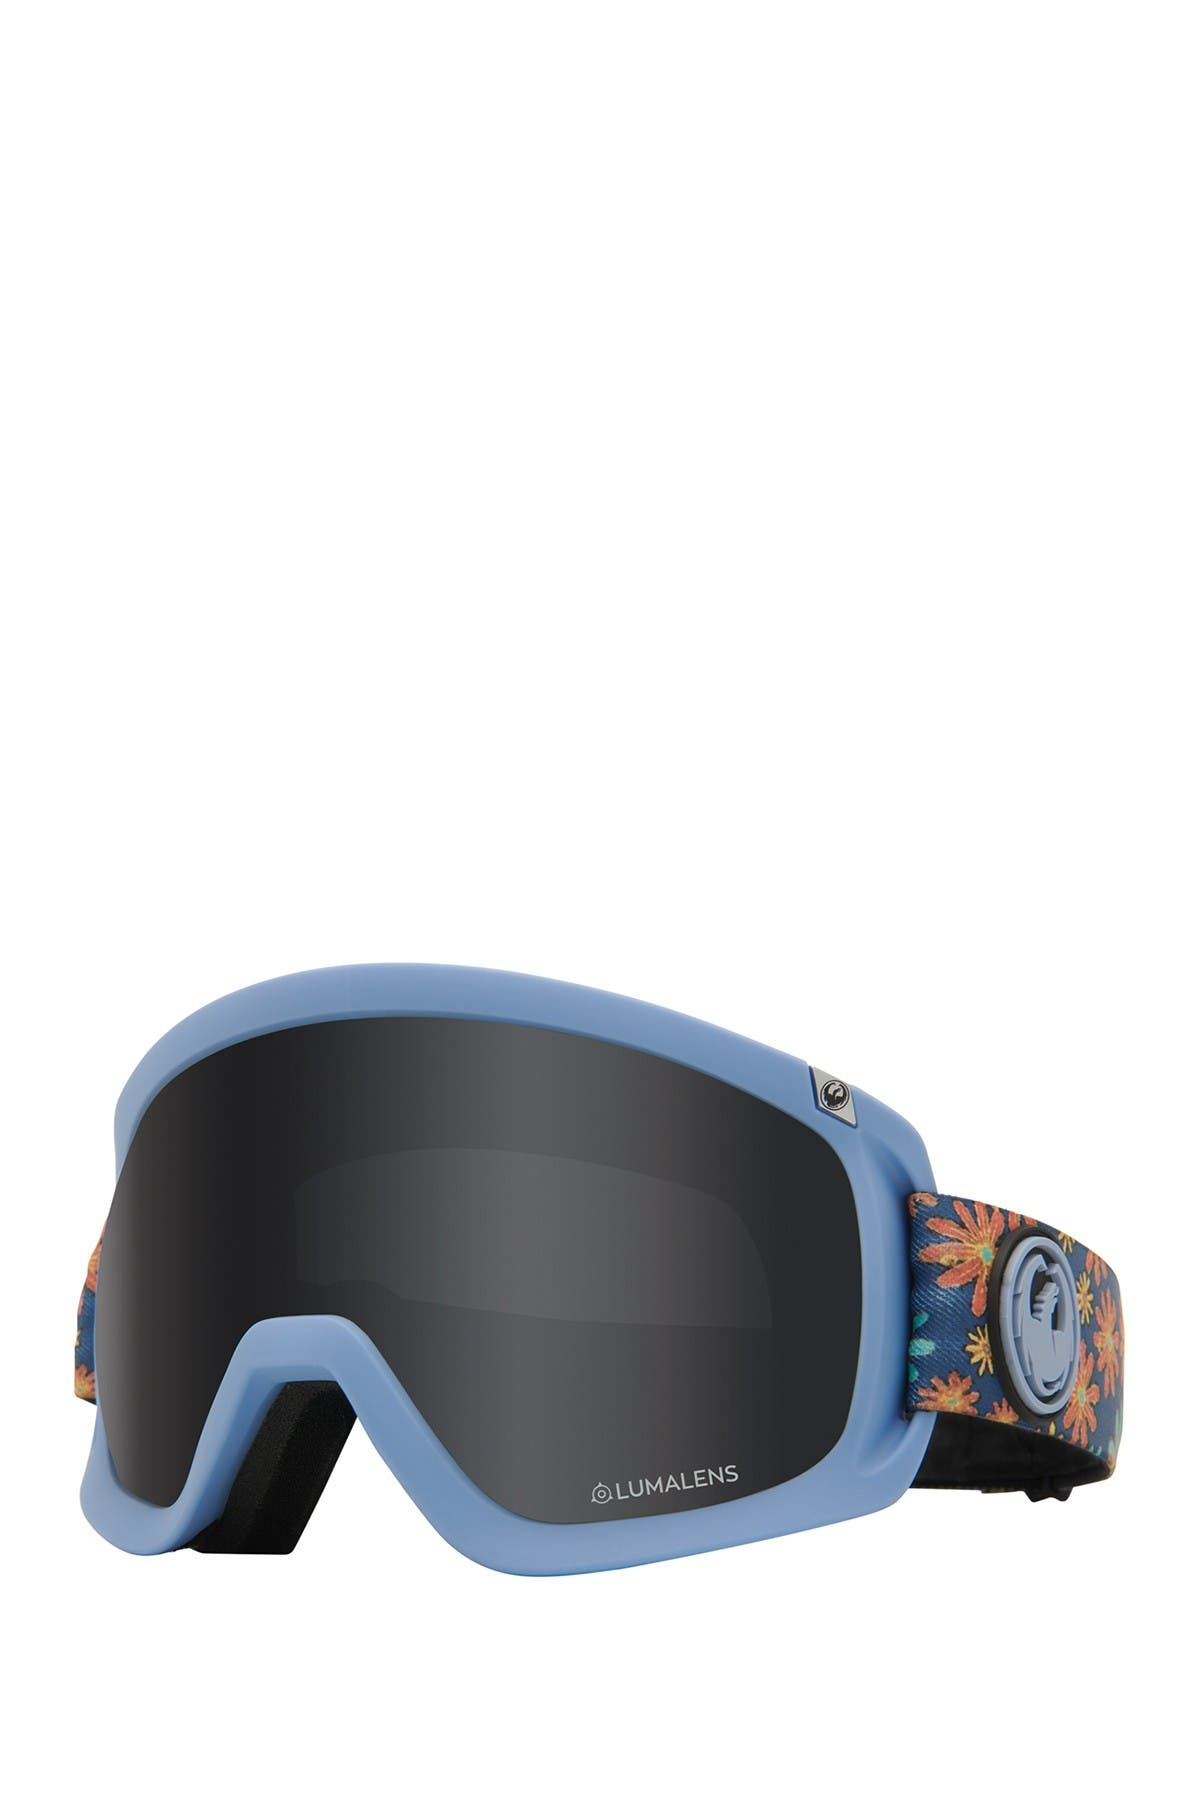 Image of DRAGON D3 Over-the-Glasses 50mm Goggles